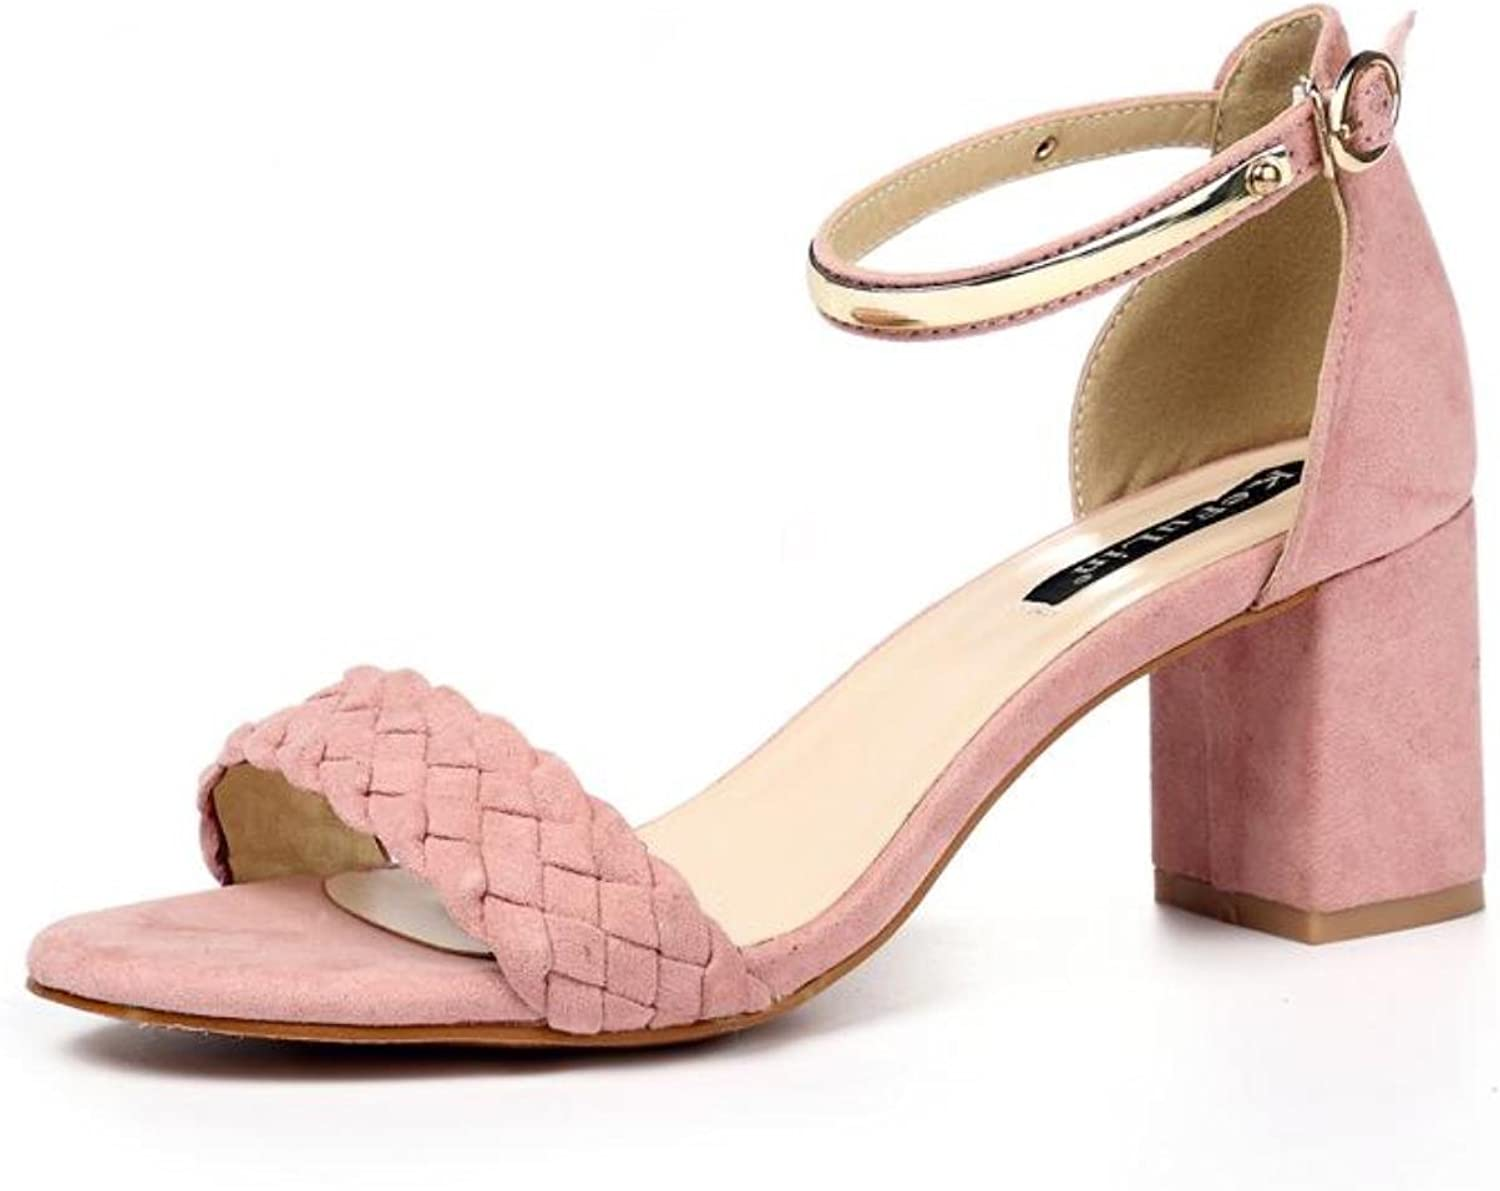 Female Summer Sandals With Retro Classic Rough Handmade Word Buckle Toe With All-match Sexy High-heeled Sandals